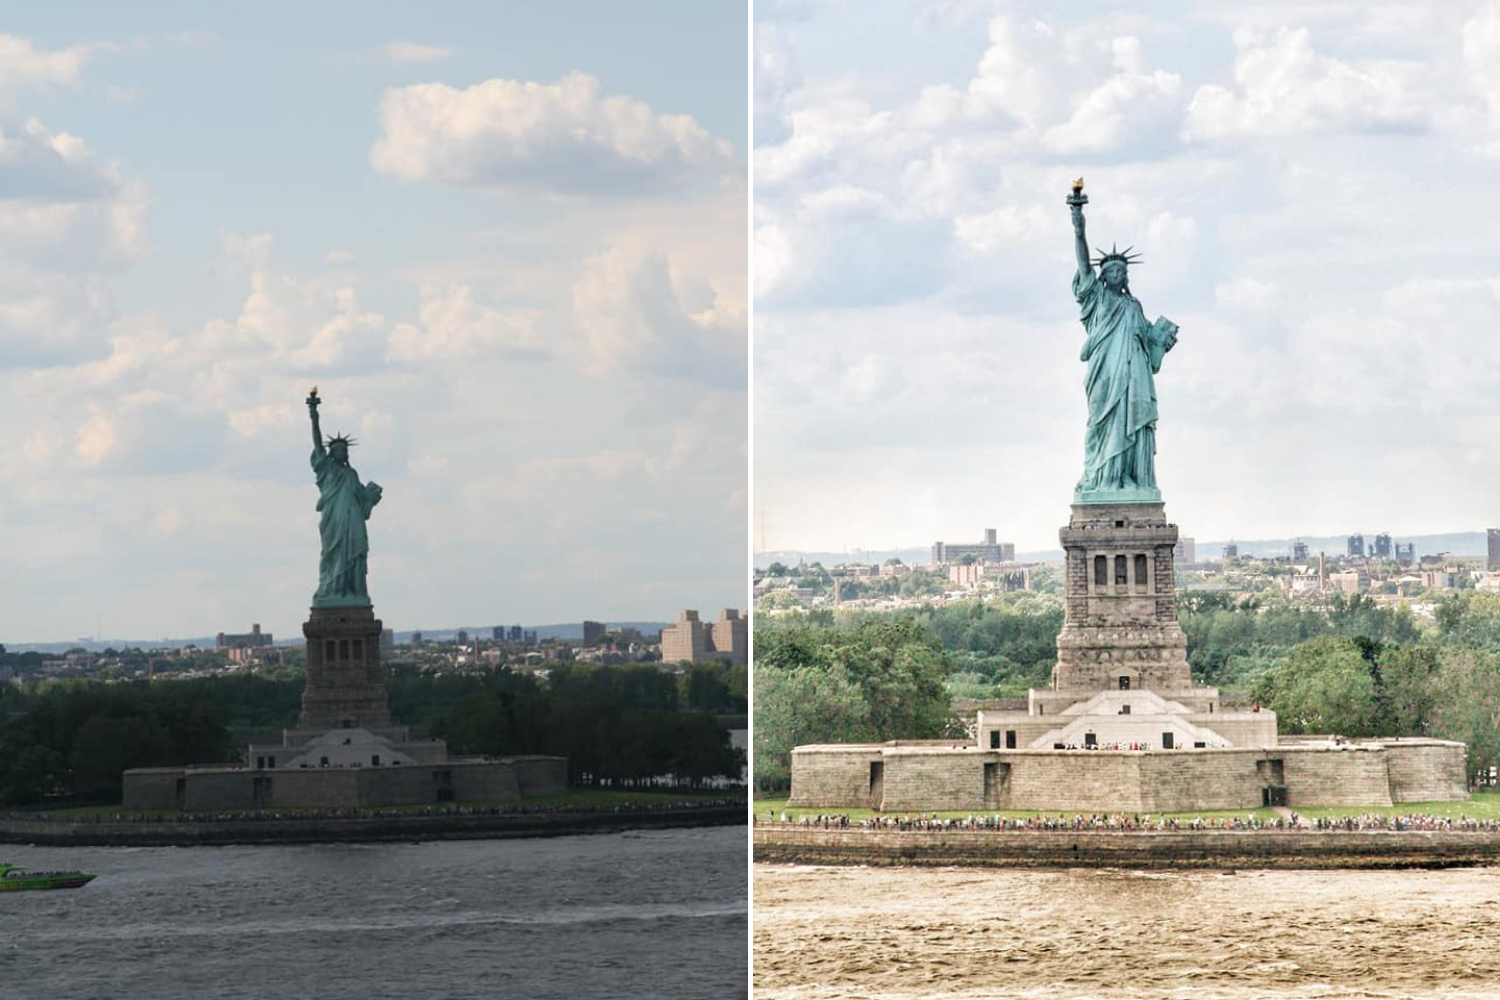 unedited and edited image of the Statue of Liberty taken by Becci L.